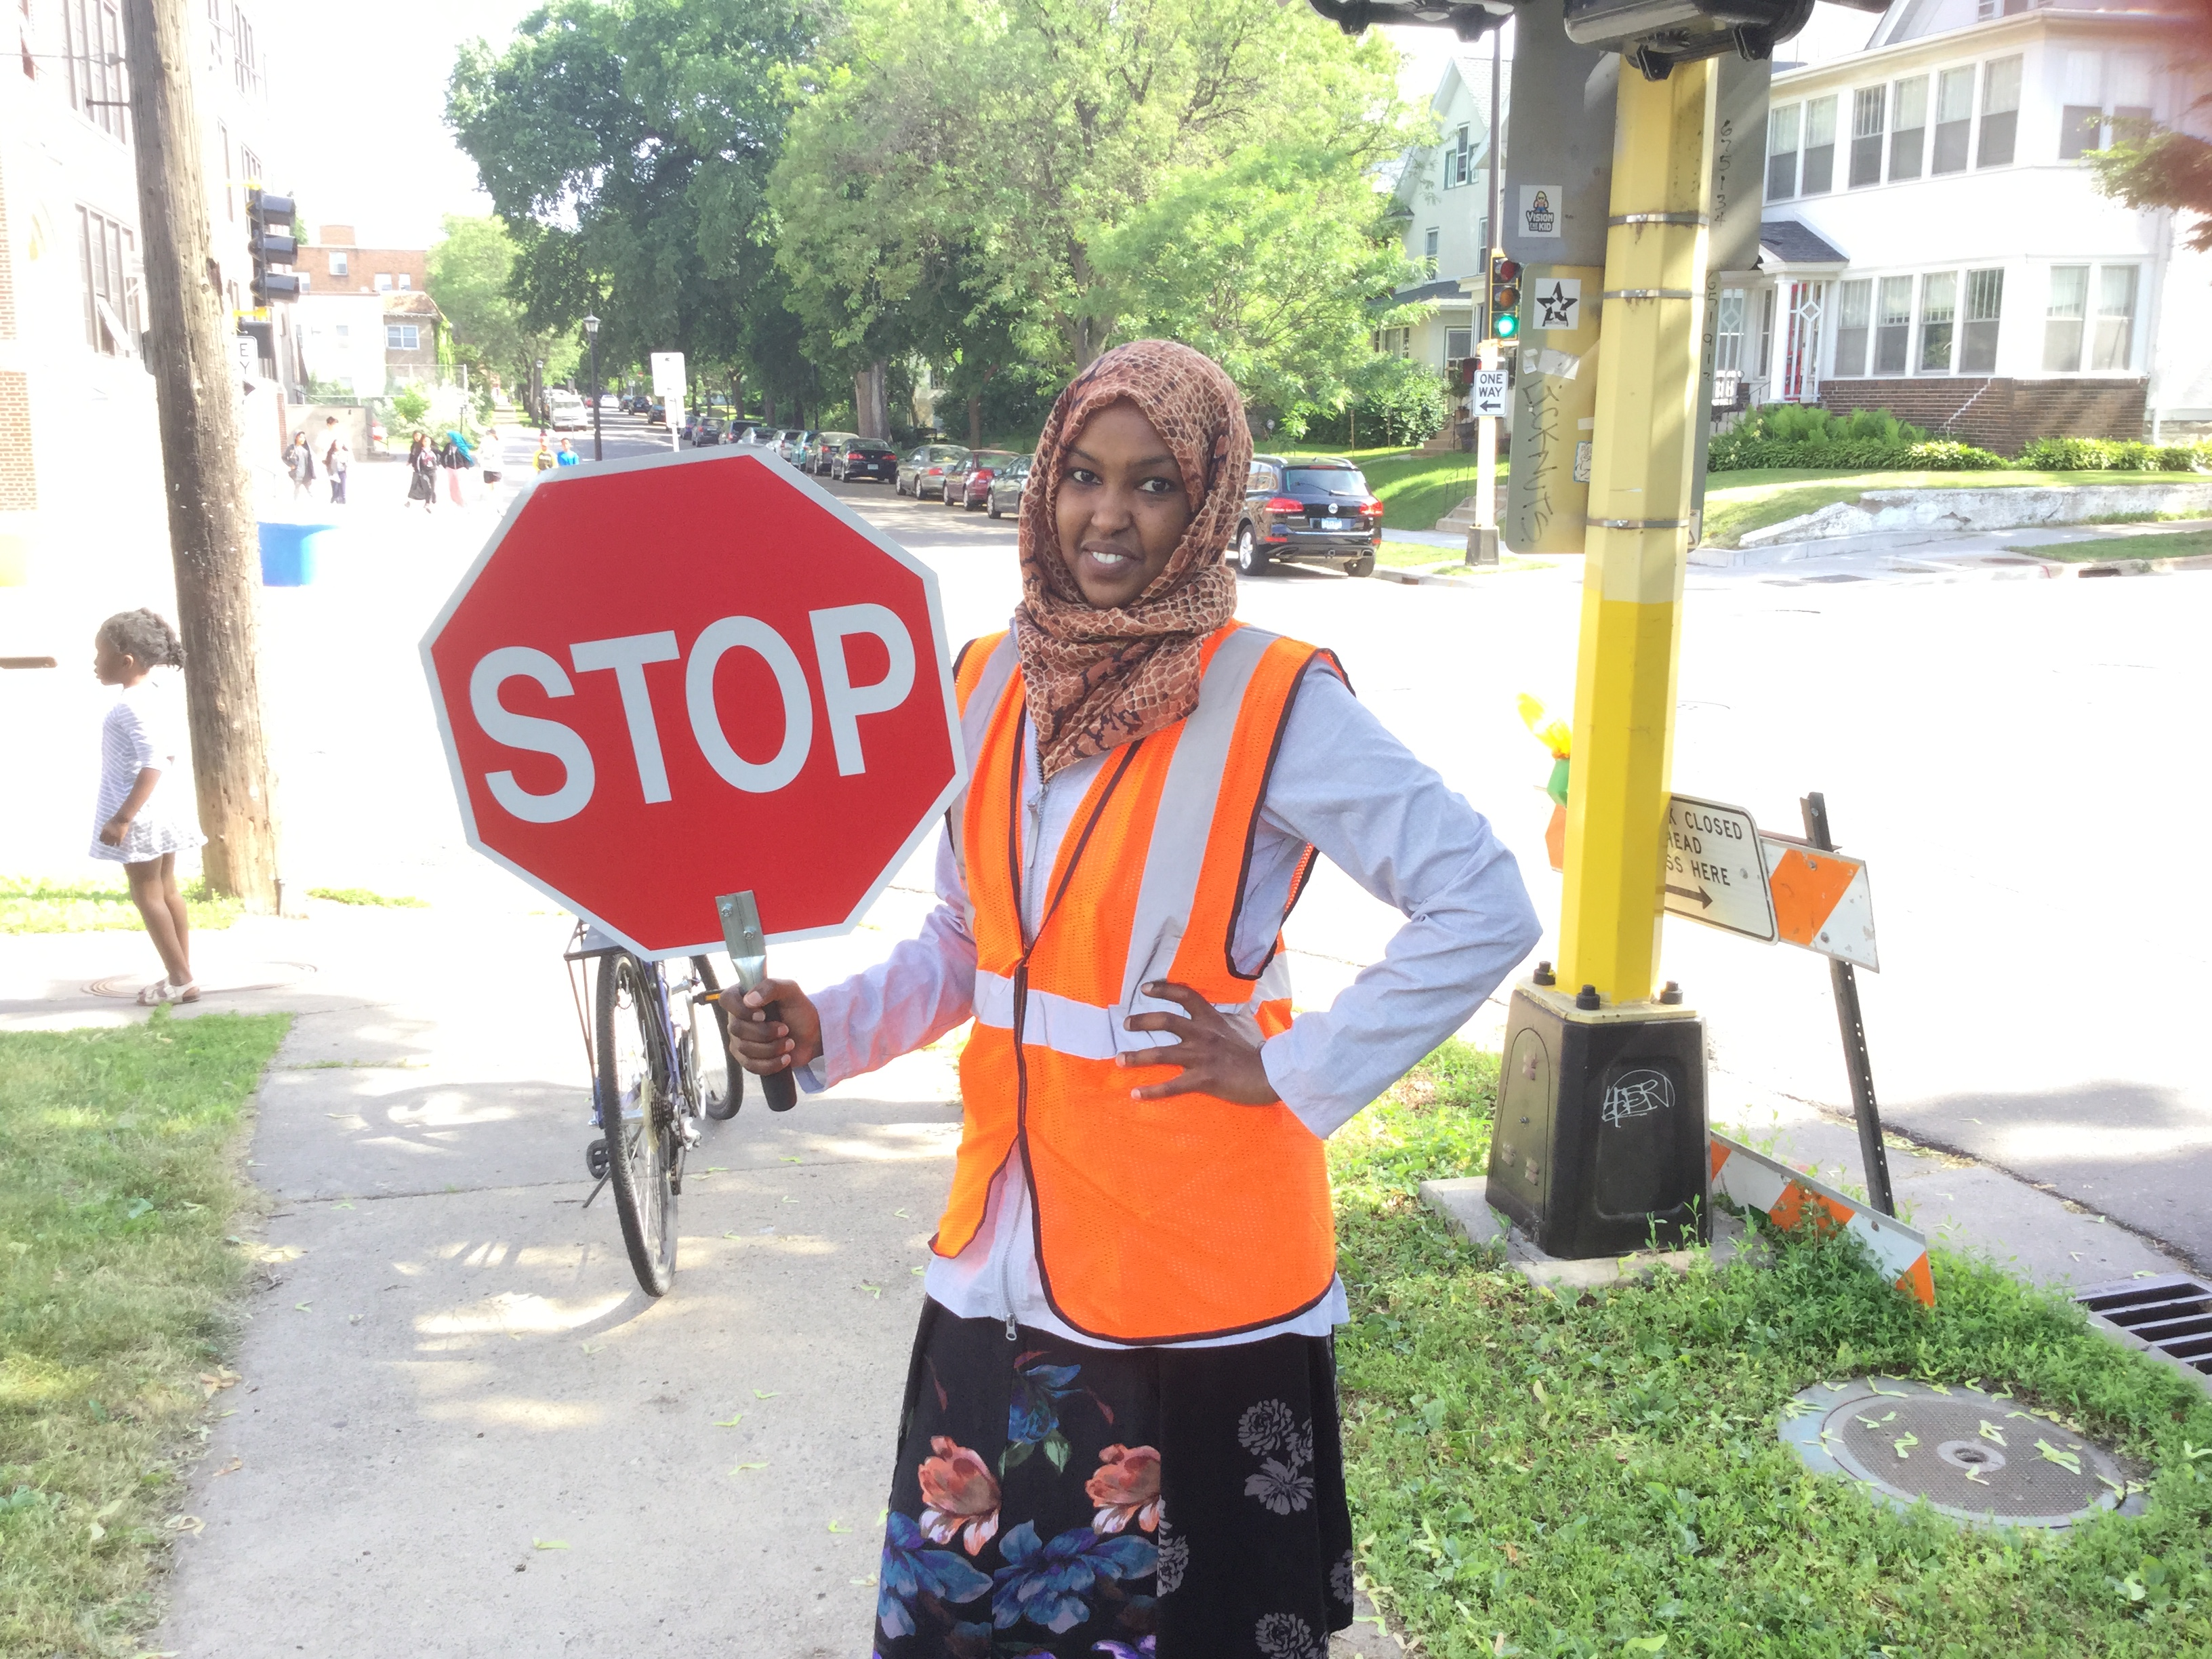 photo of crossing guard holding up stop sign